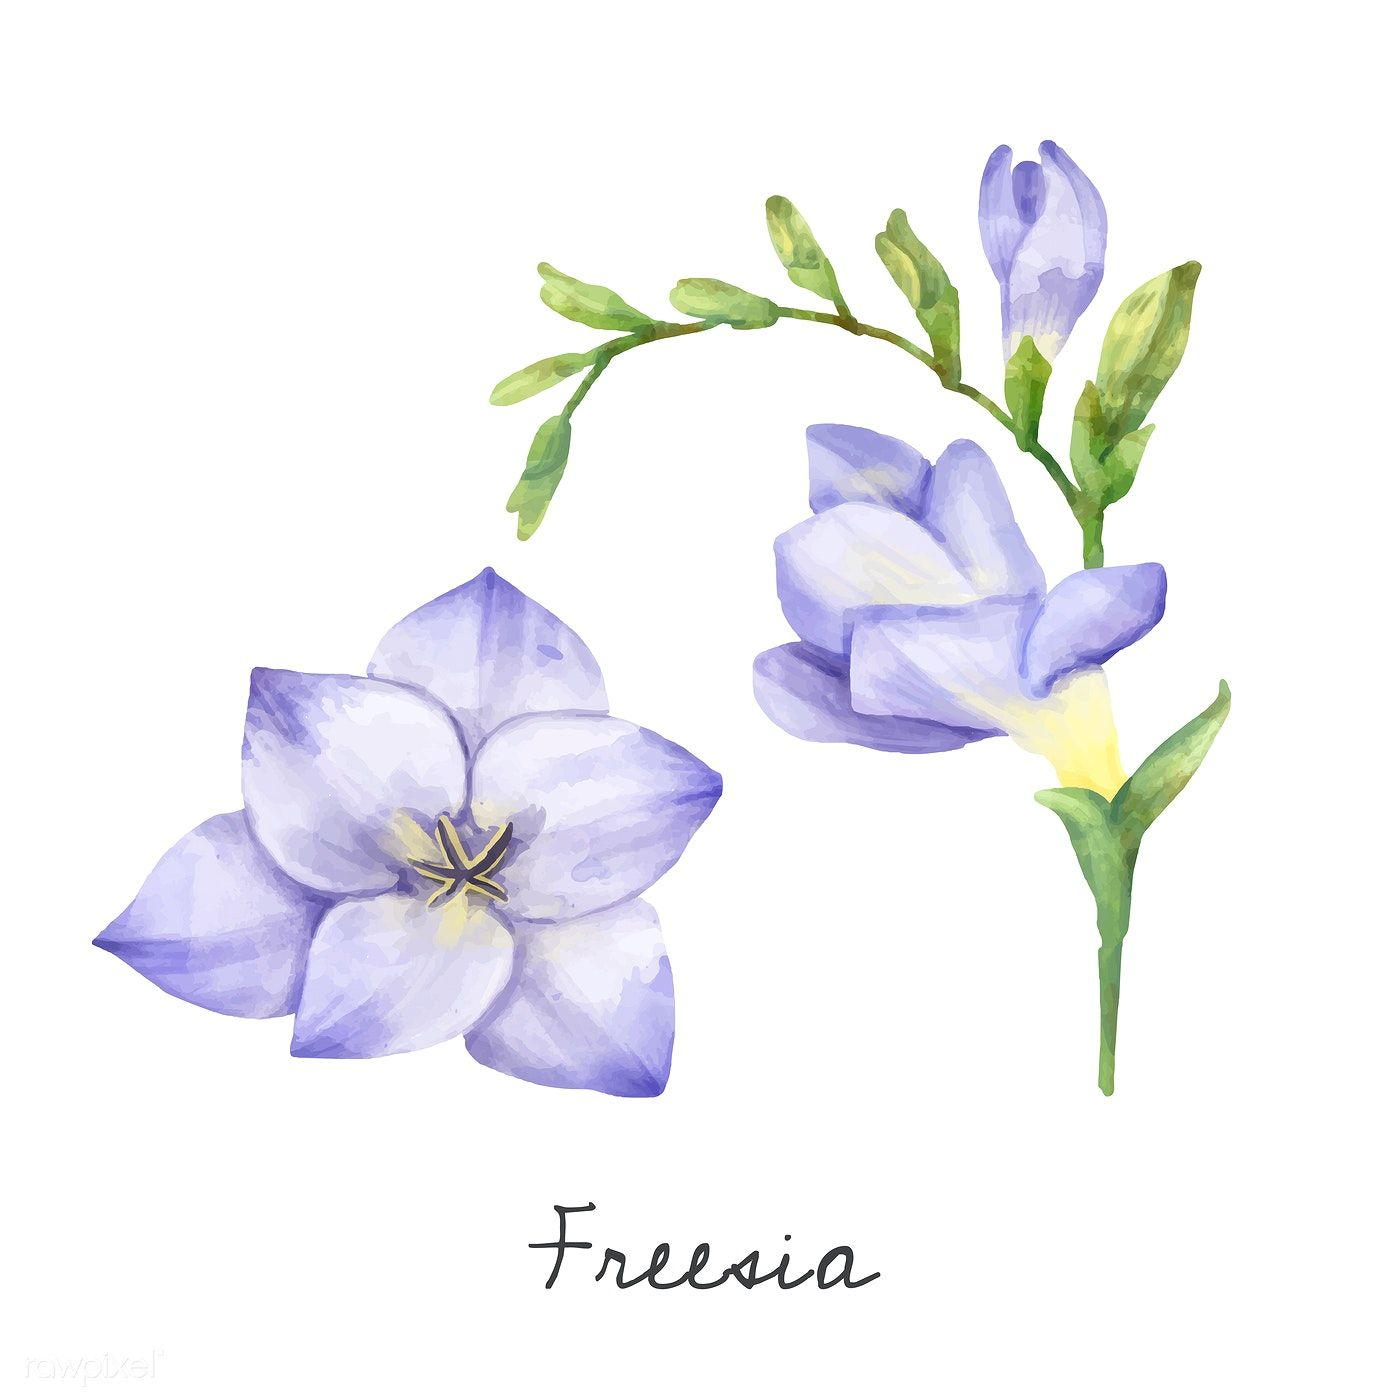 Illustration Of Freesia Flower Isolated On White Background Free Image By Rawpixel Com Busbus In 2020 Flower Illustration Freesia Flowers Plant Illustration